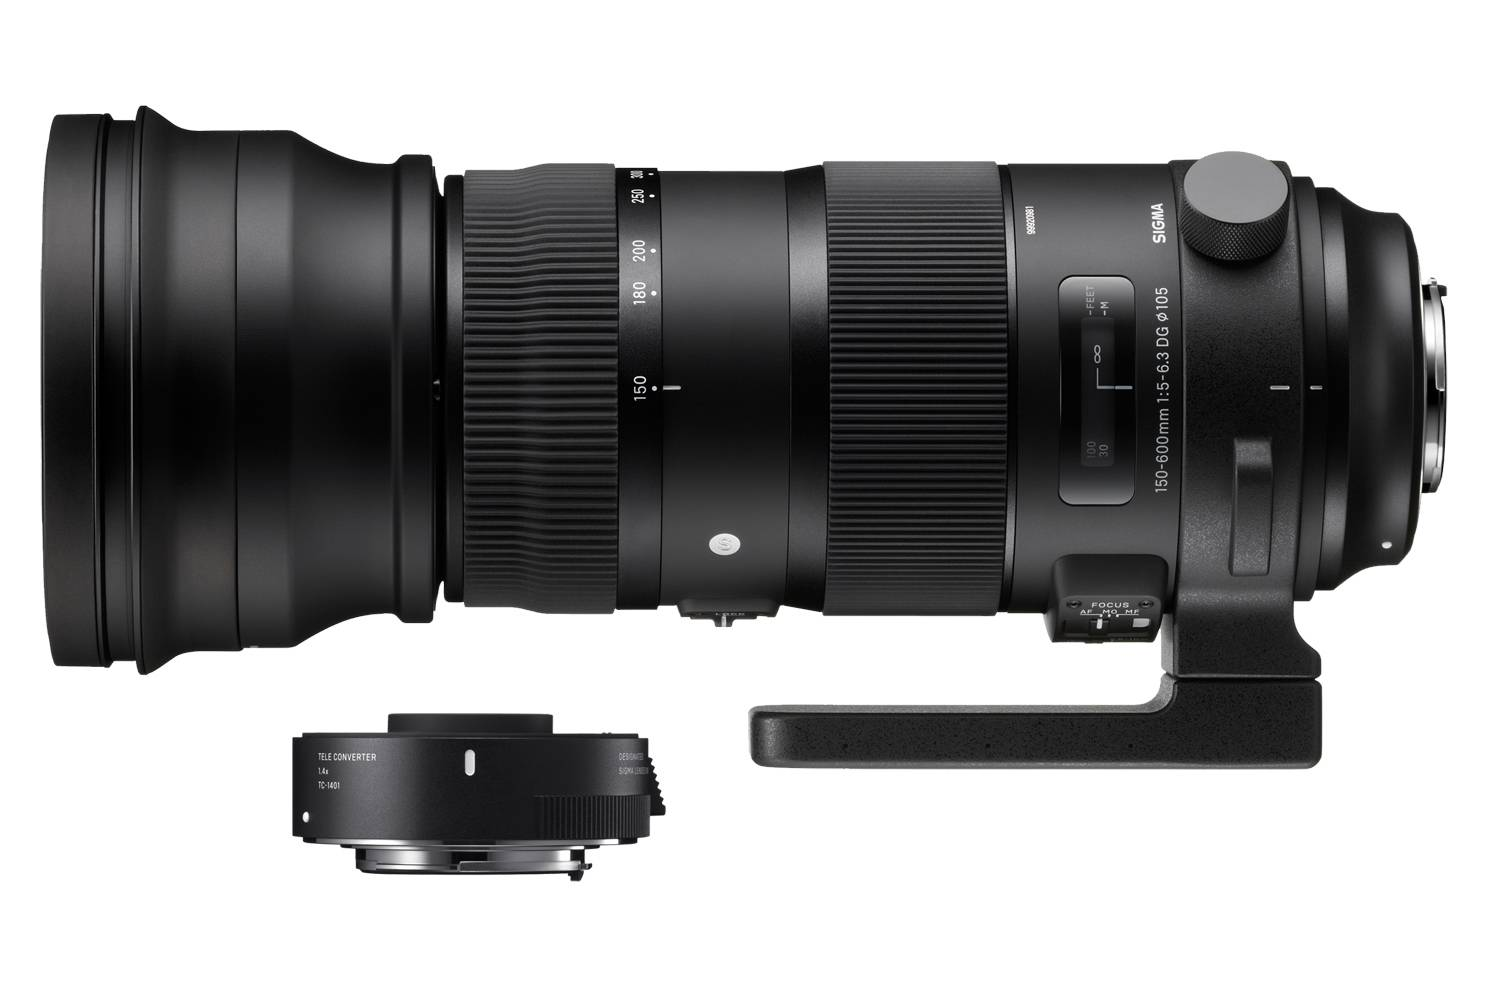 Sigma 150-600mm f/5-6.3 DG OS HSM Sport with Teleconverter TC-1401 for Sigma SA